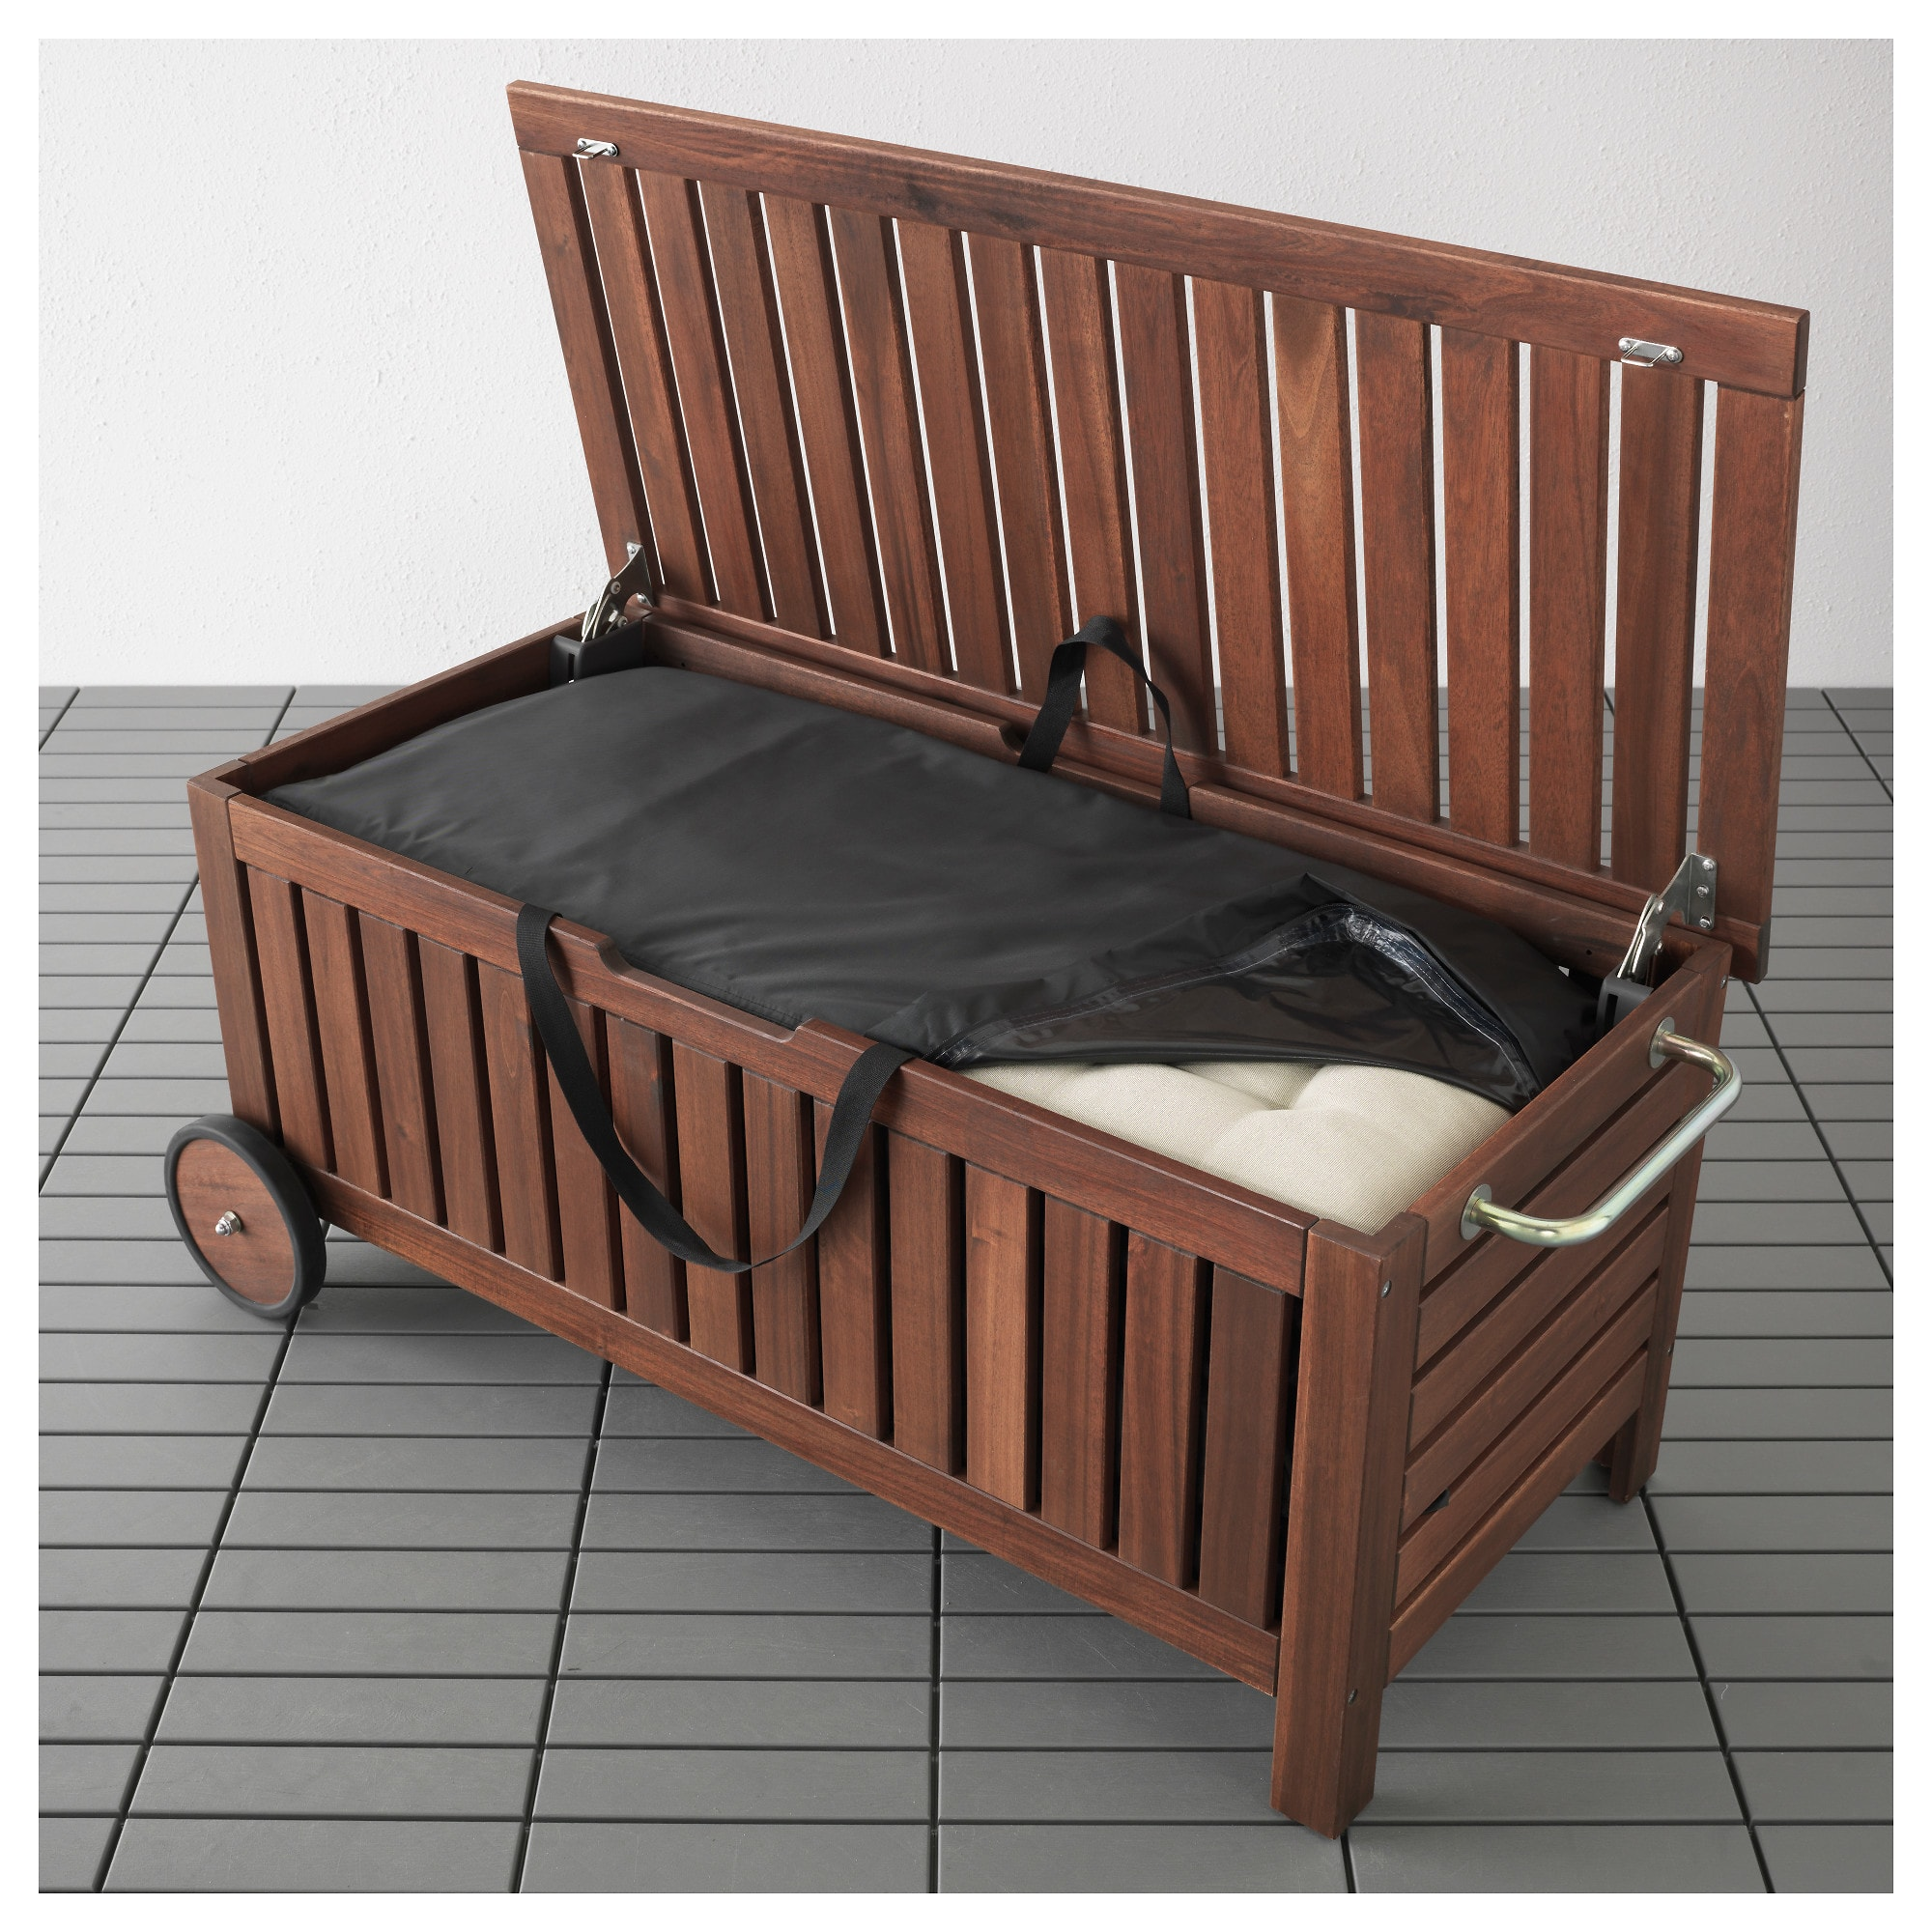 Ikea Applaro Tostero Brown Stained Bench With Storage Bag Outdoor In 2020 Wooden Storage Bench Outdoor Storage Bench With Storage